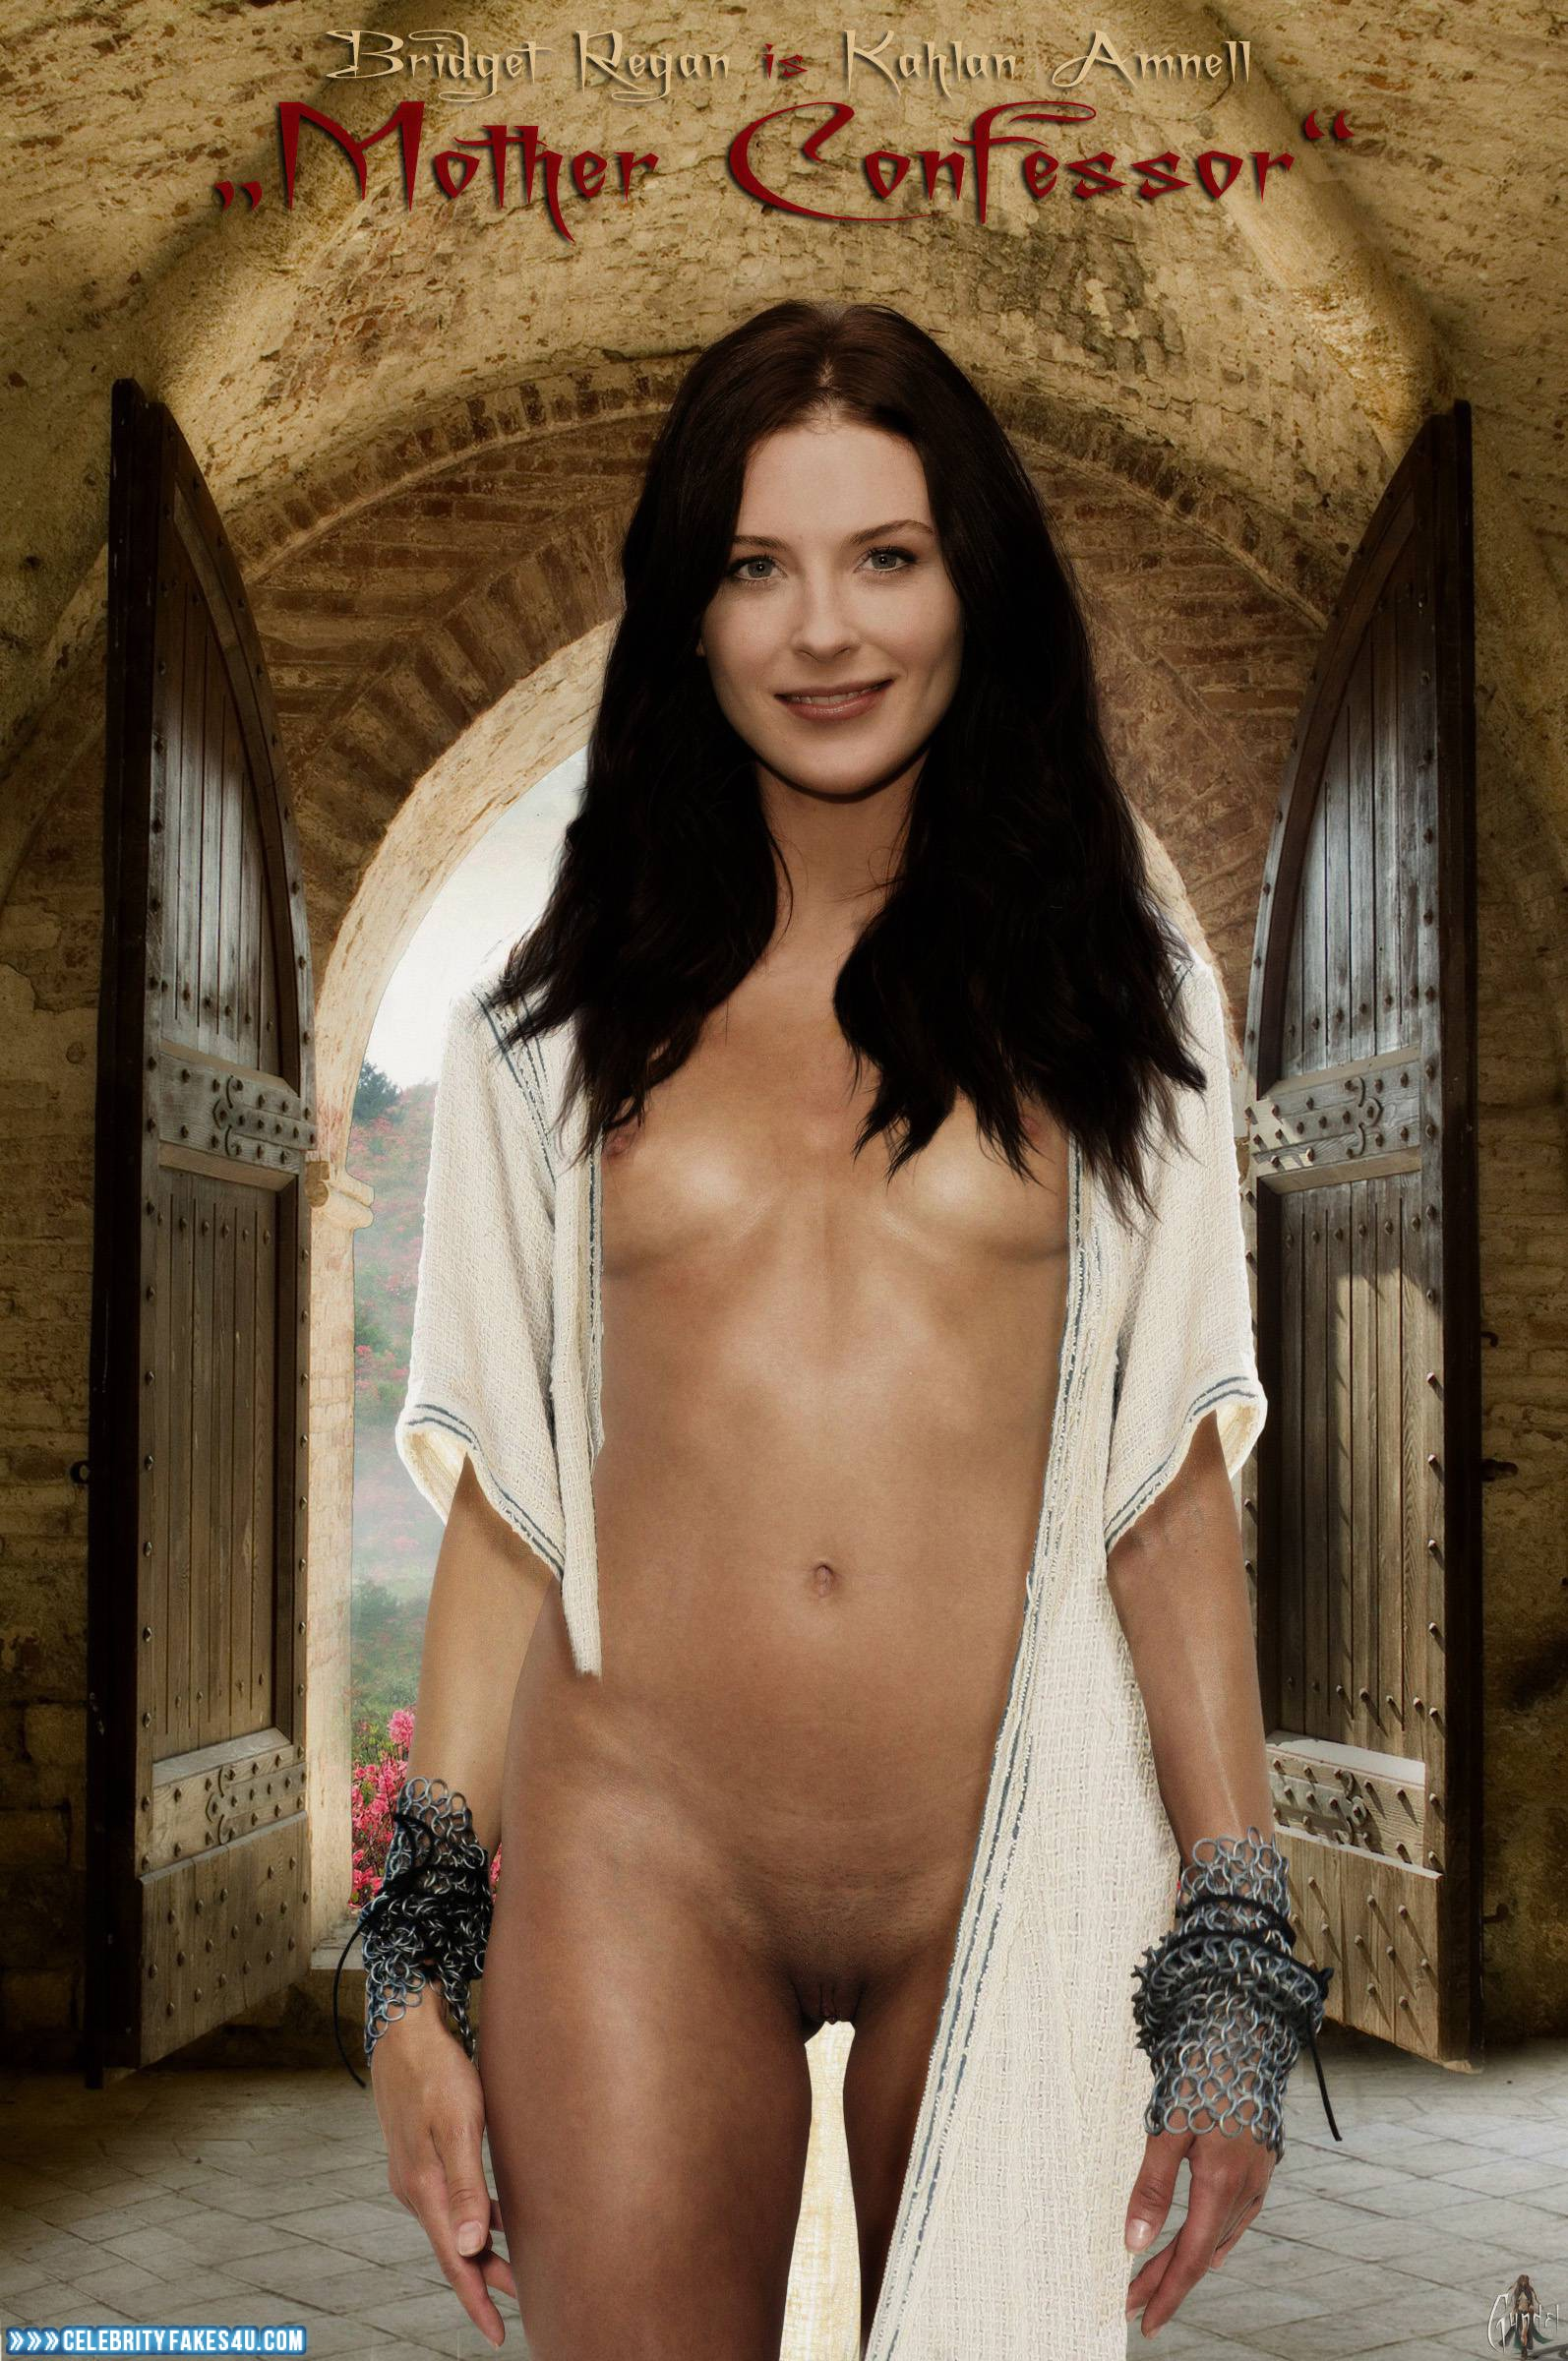 Are not Bridget regan fake nude